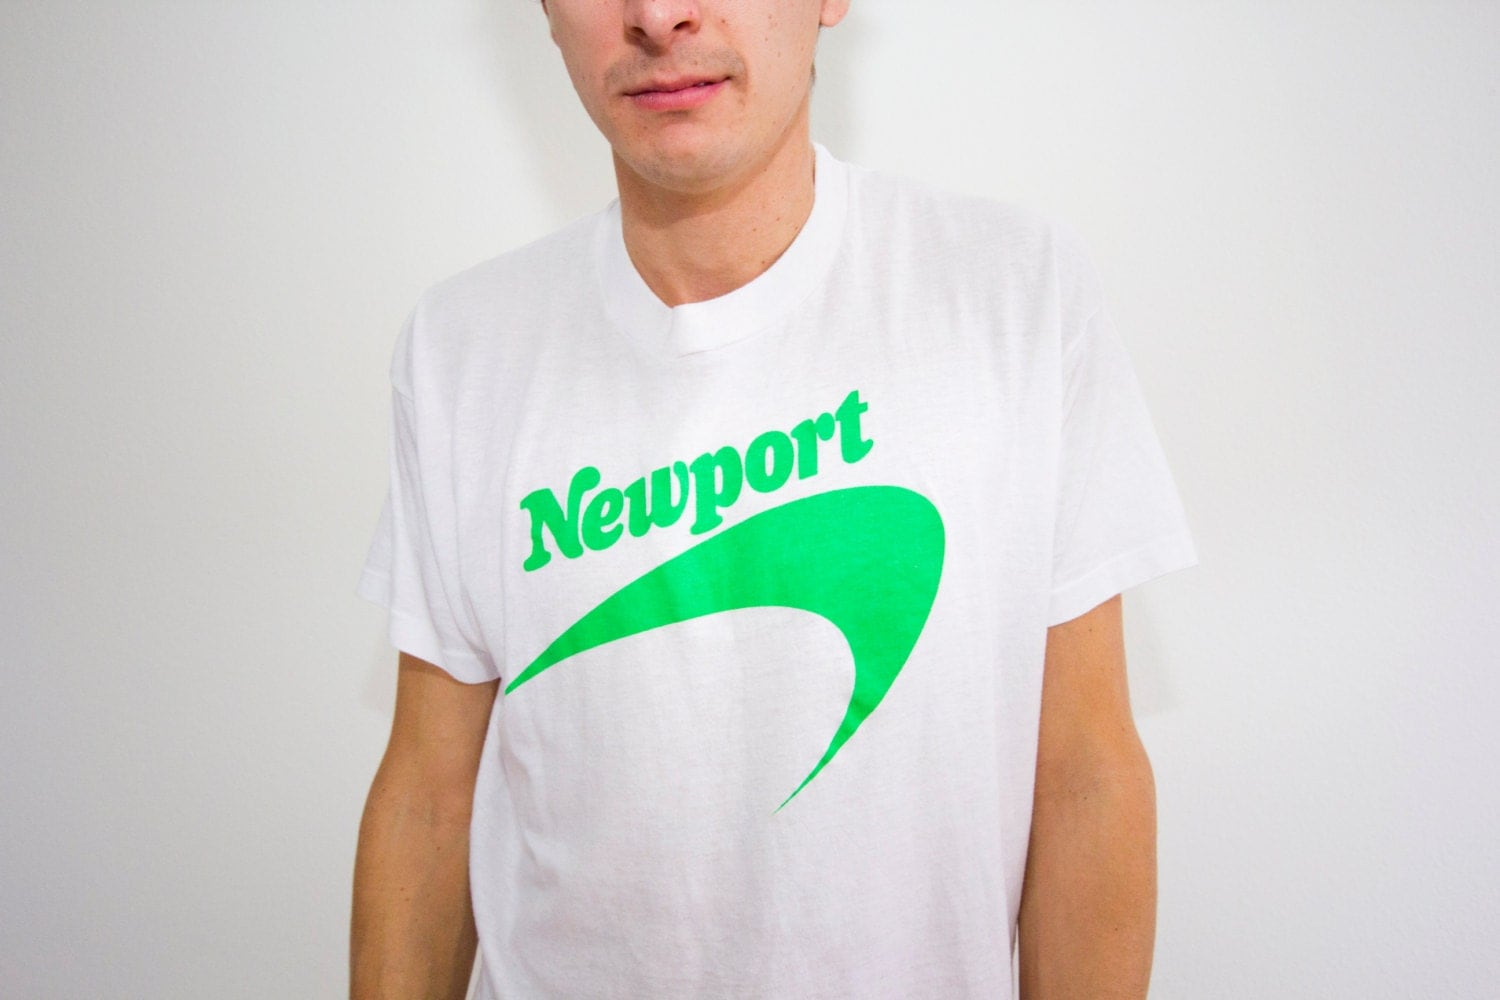 Introducing the second shirt in my Newport Pleasure Collection! Here is the companion shirt of my original upload, which was for men. This shirt is available for ages Young Adult to Elder and can be found in Tops > T-Shirt.